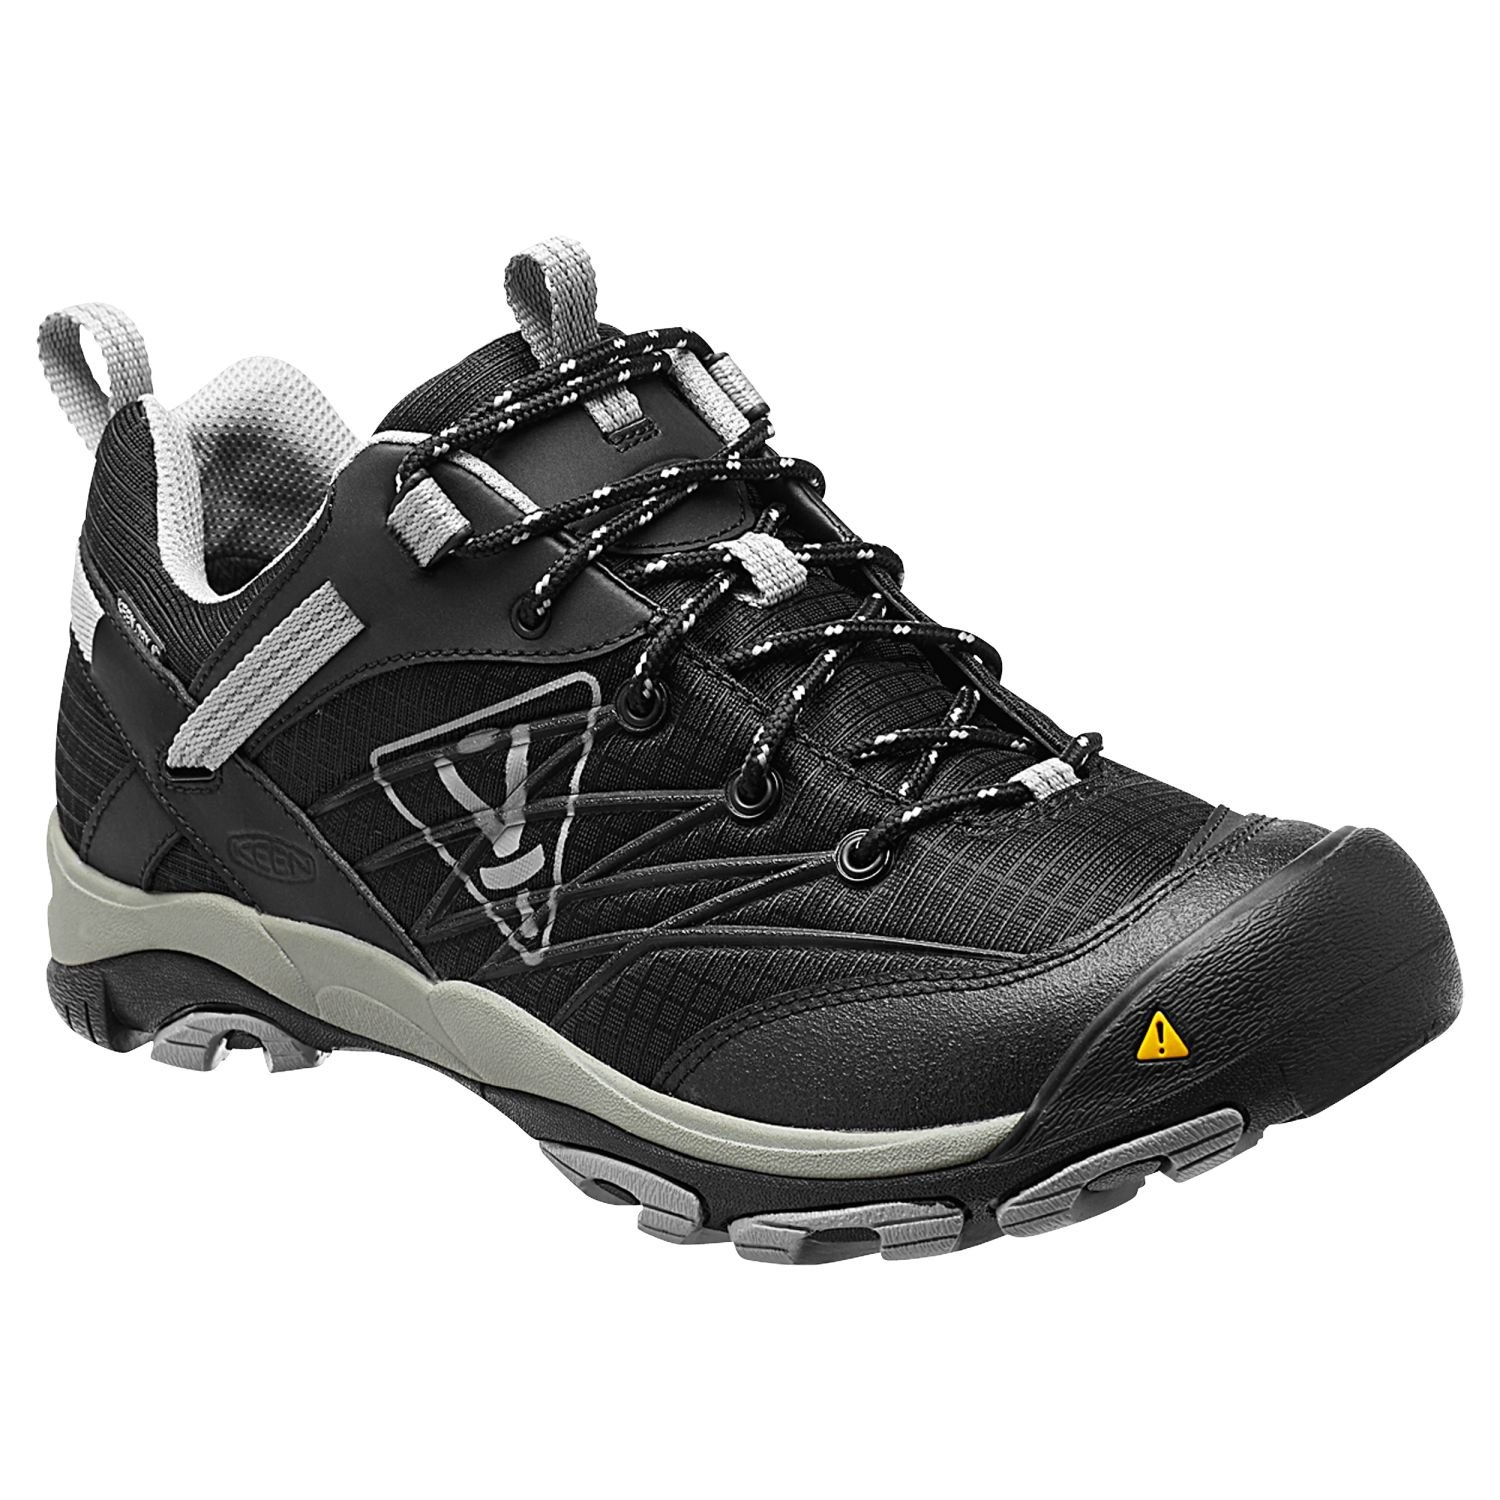 Keen Shoes For Disc Golf